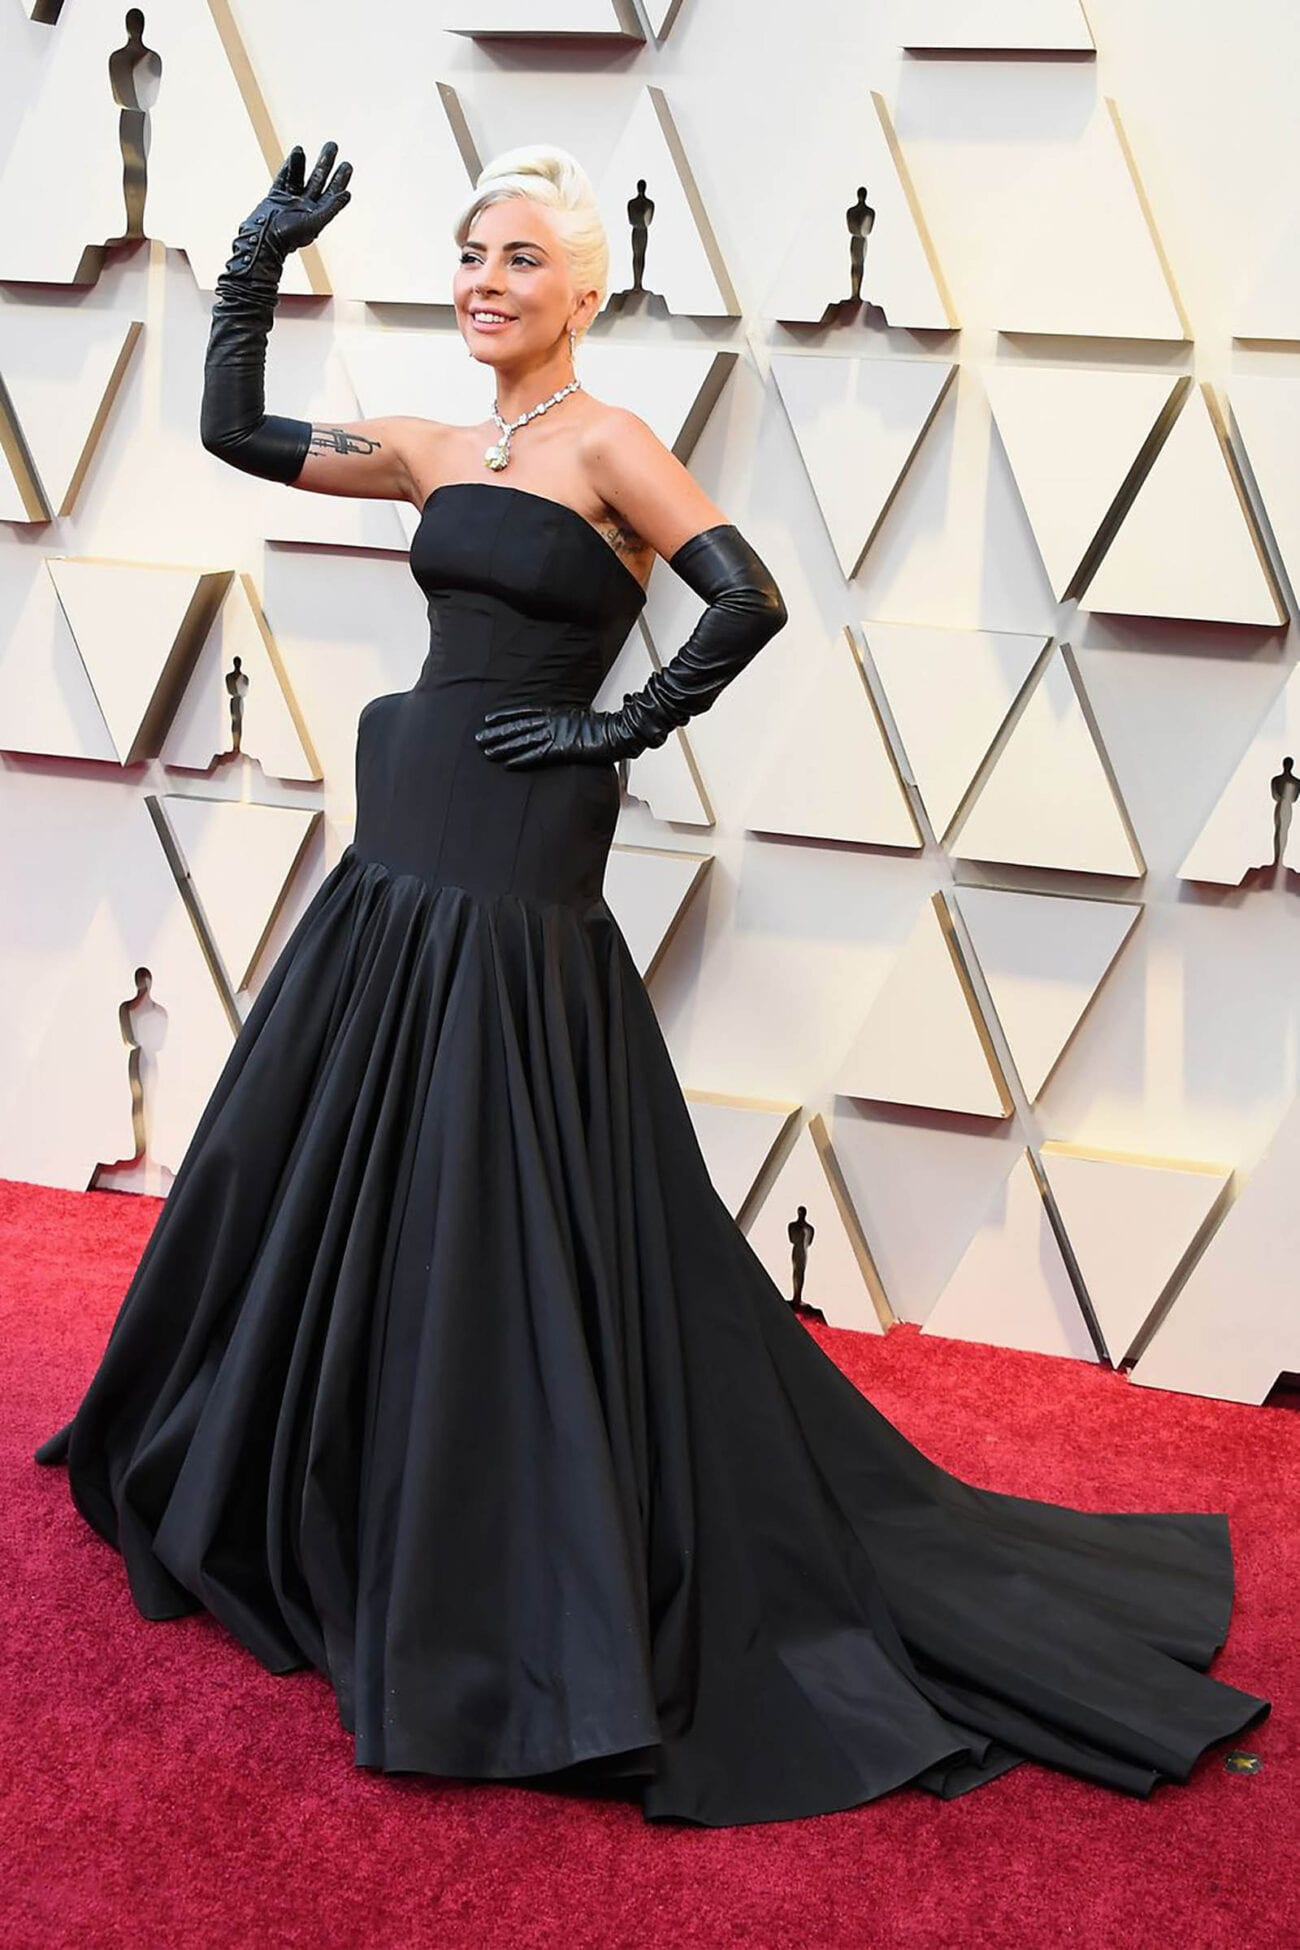 Lady Gaga is a fashionista of the first order with her own iconic style. This layout proves she has gone way past the meat dress!